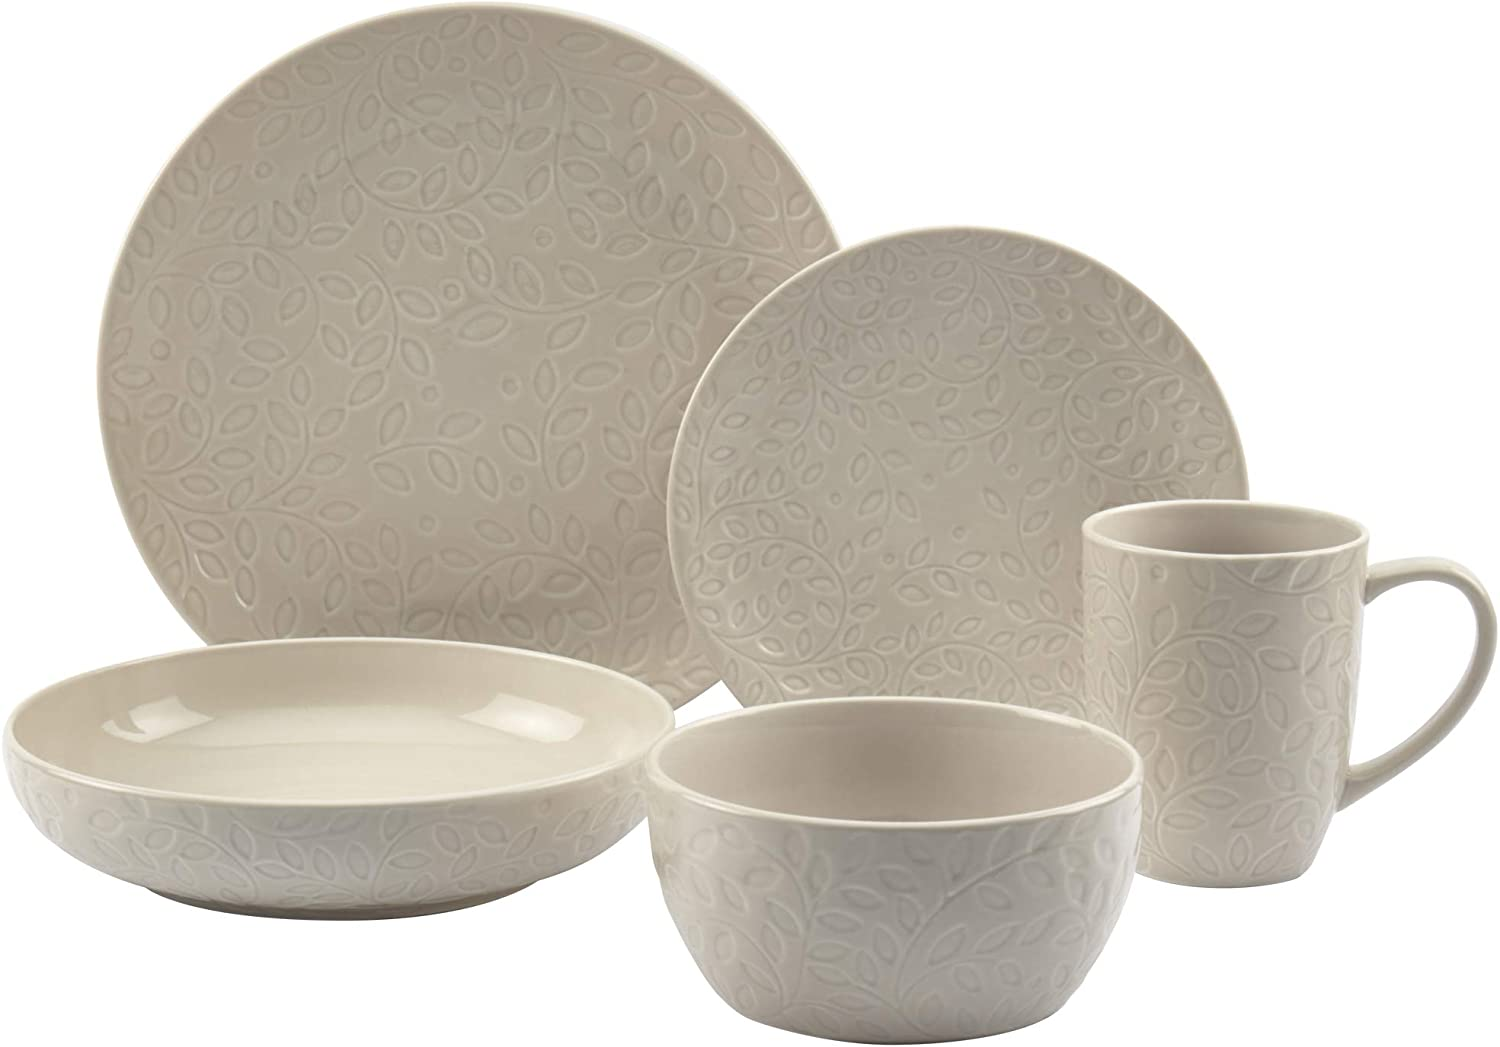 Tabletops Gallery Fashion Dinnerware Collection- Embossed Stoneware Dishes Service for 4 Dinner Salad Appitizer Dessert Plate Bowls, 20 Piece Boxwood Dinnerware Set in Cream